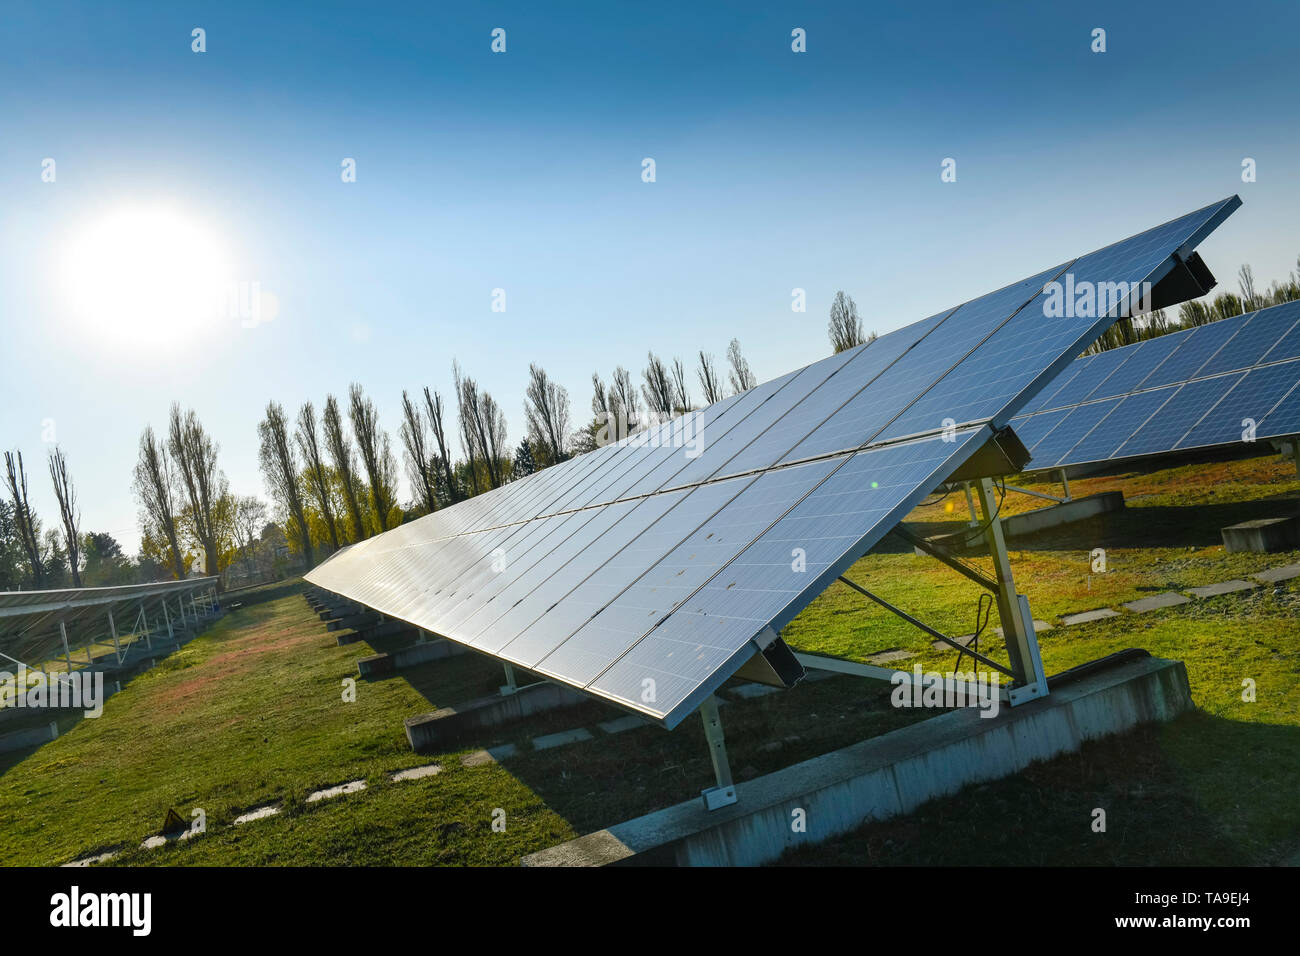 Photovoltaikanlage of the GASAG, Marien's park, Lankwitzer street, Marien's village, temple court nice mountain, Berlin, Germany, Photovoltaikanlage d - Stock Image